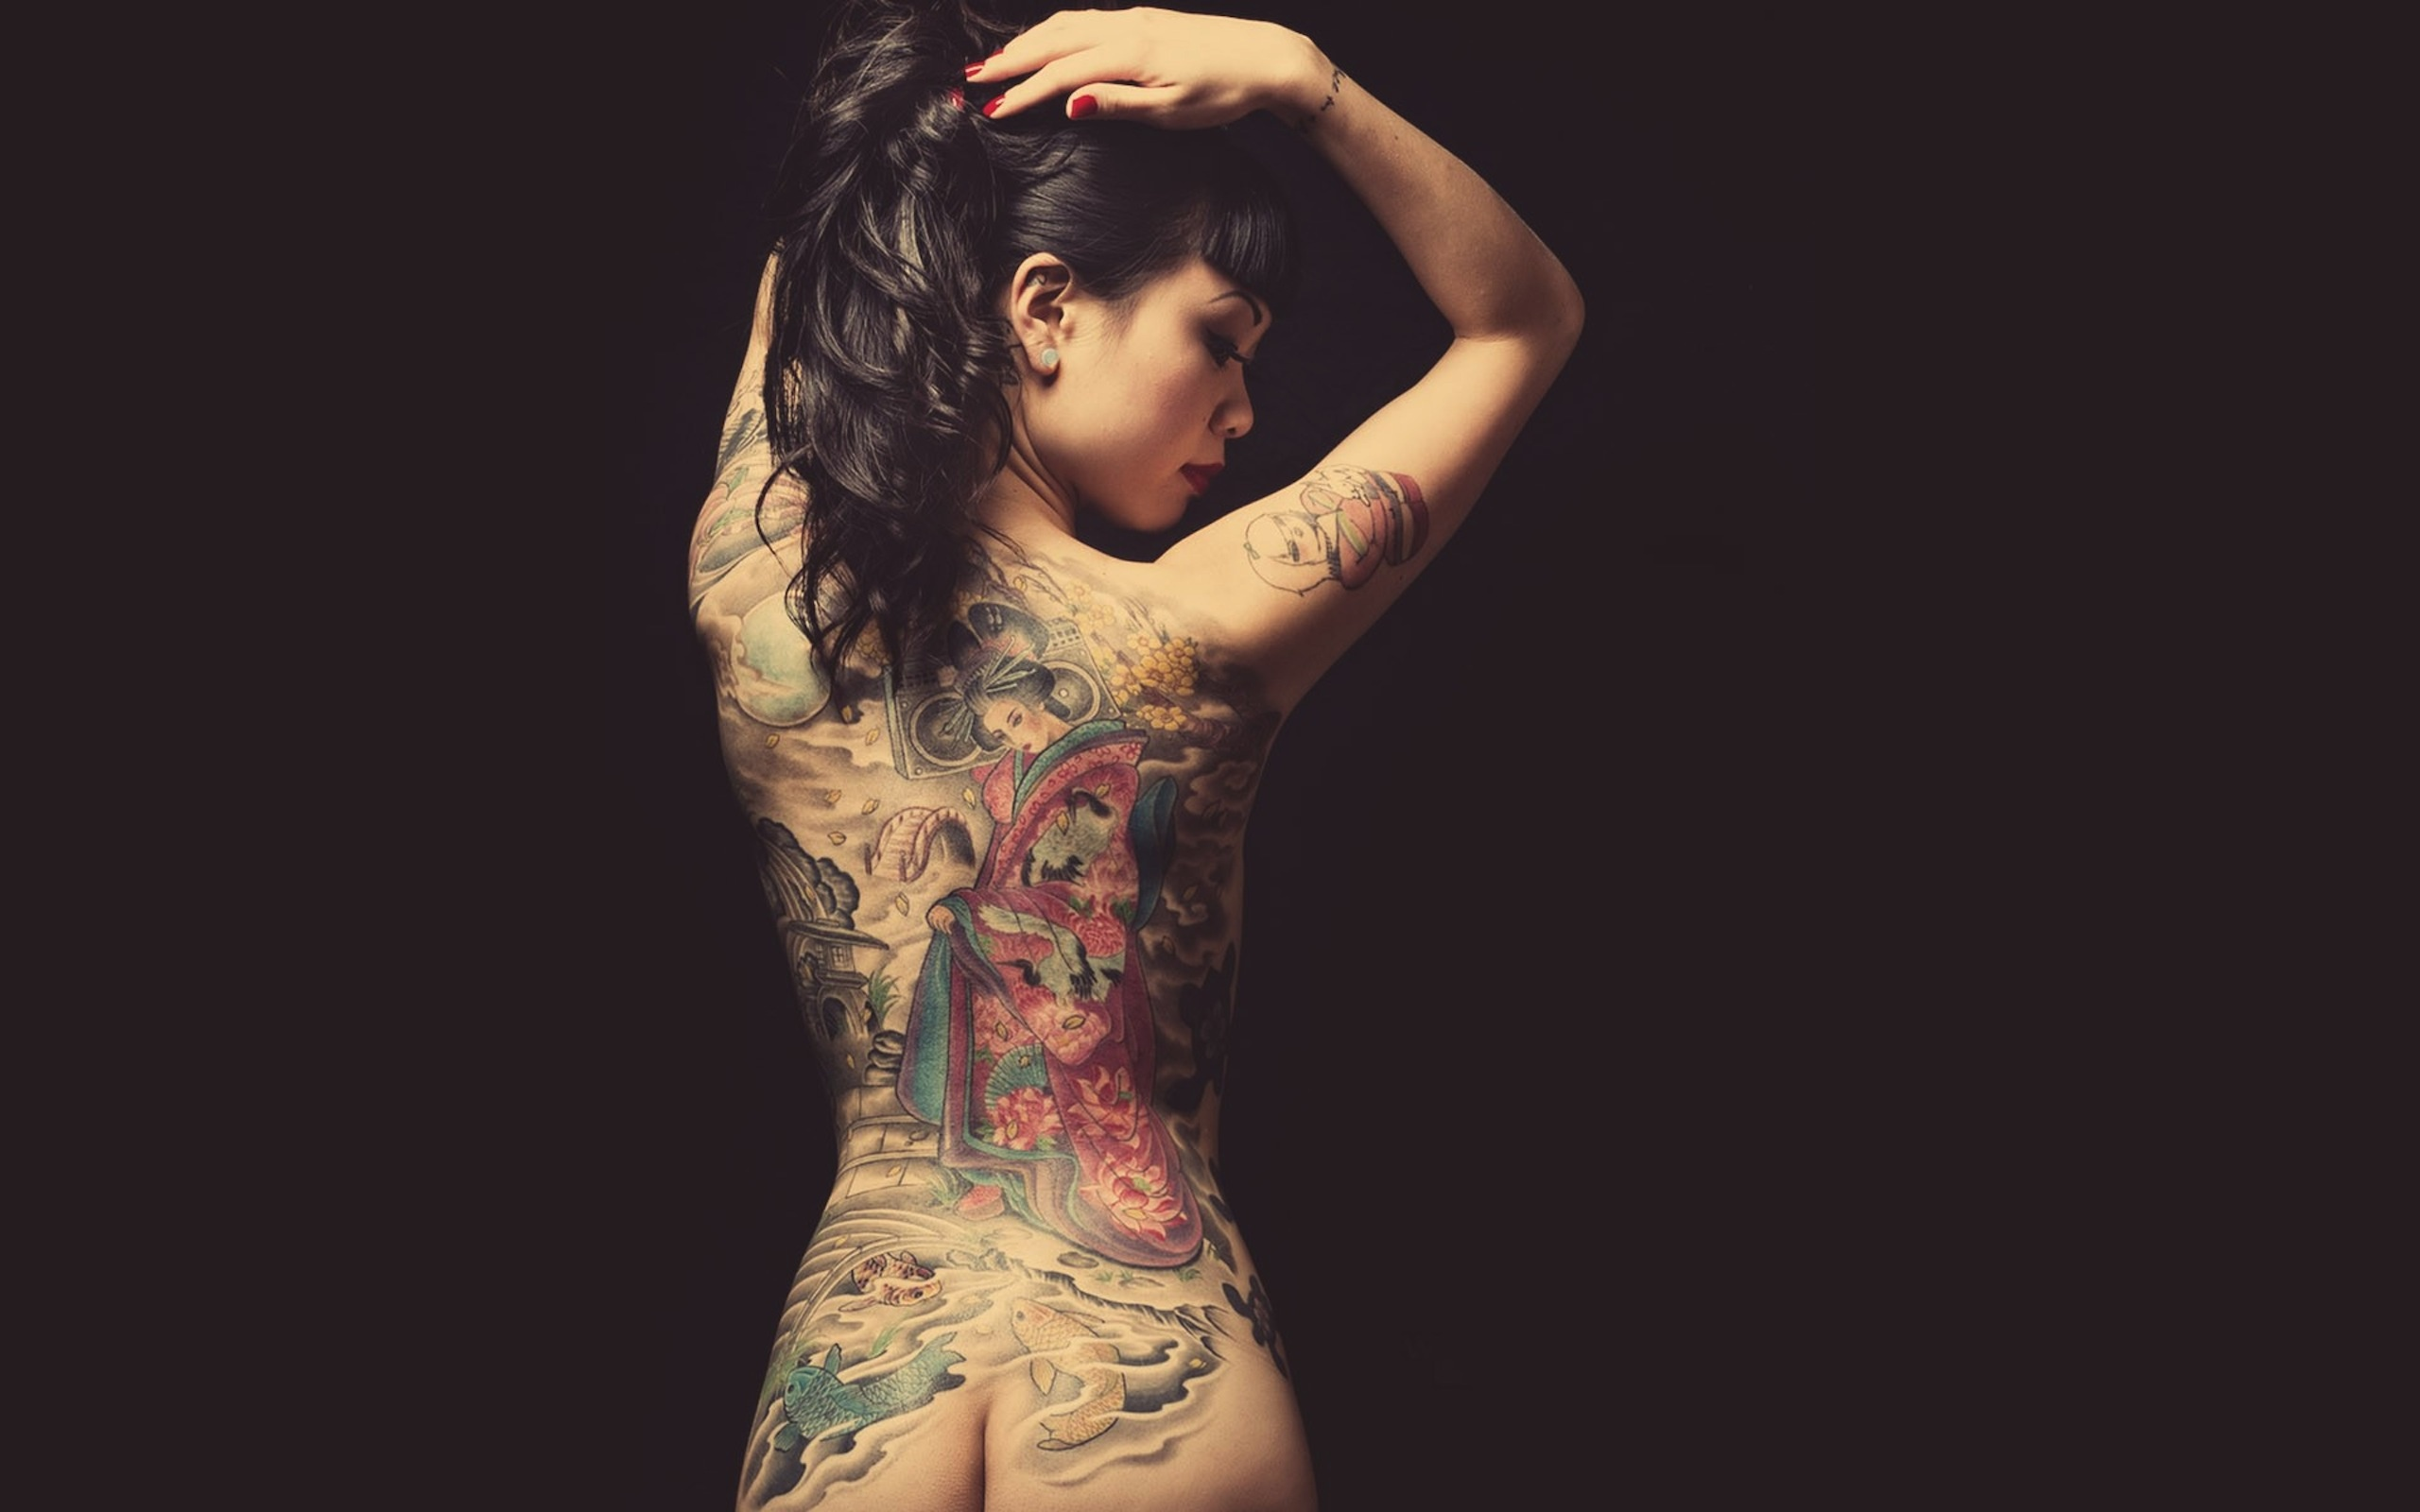 Wallpaper Asian, Tattoos, Earring, Women, Back View, Nude -3544